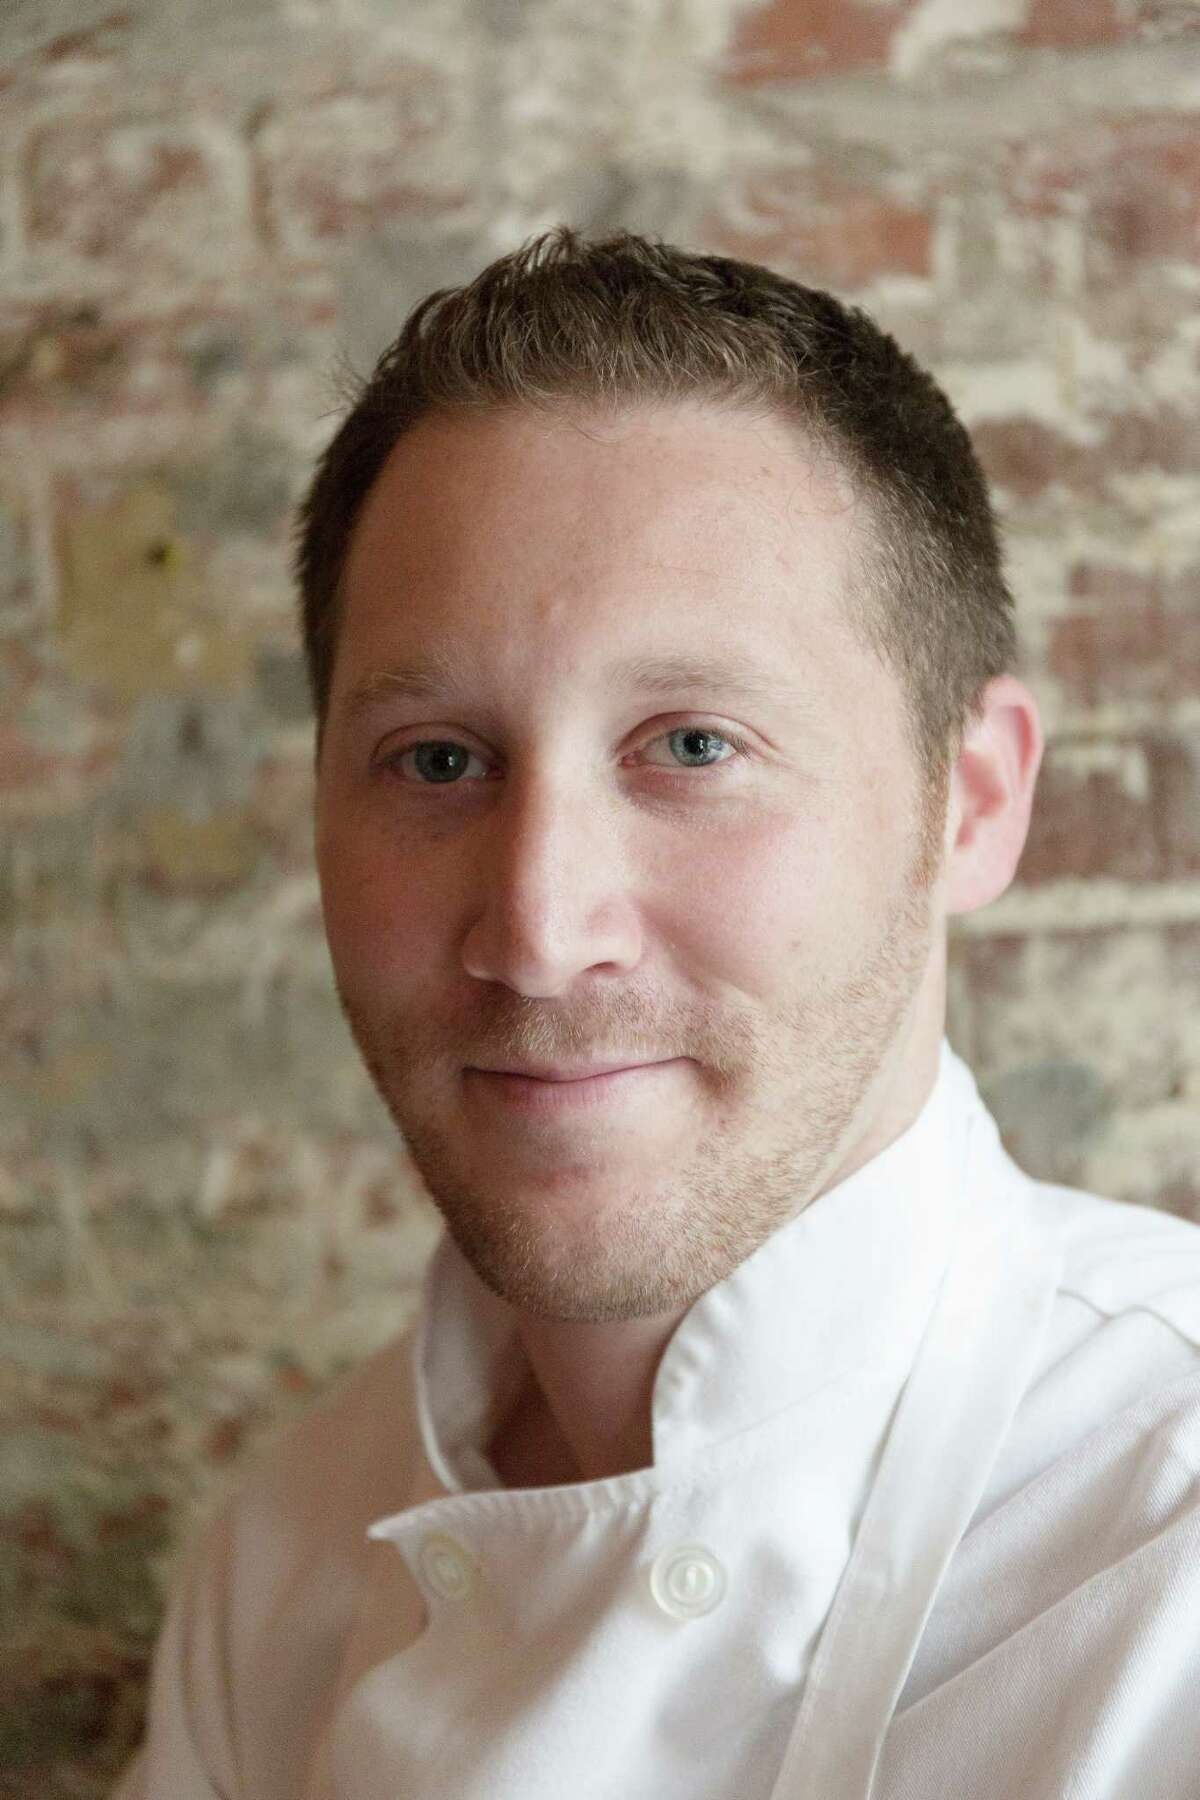 Matthew Rudofker, director of culinary operations for the Momofuku restaurant group, has been added to the chef lineup for Southern Smoke 2018.